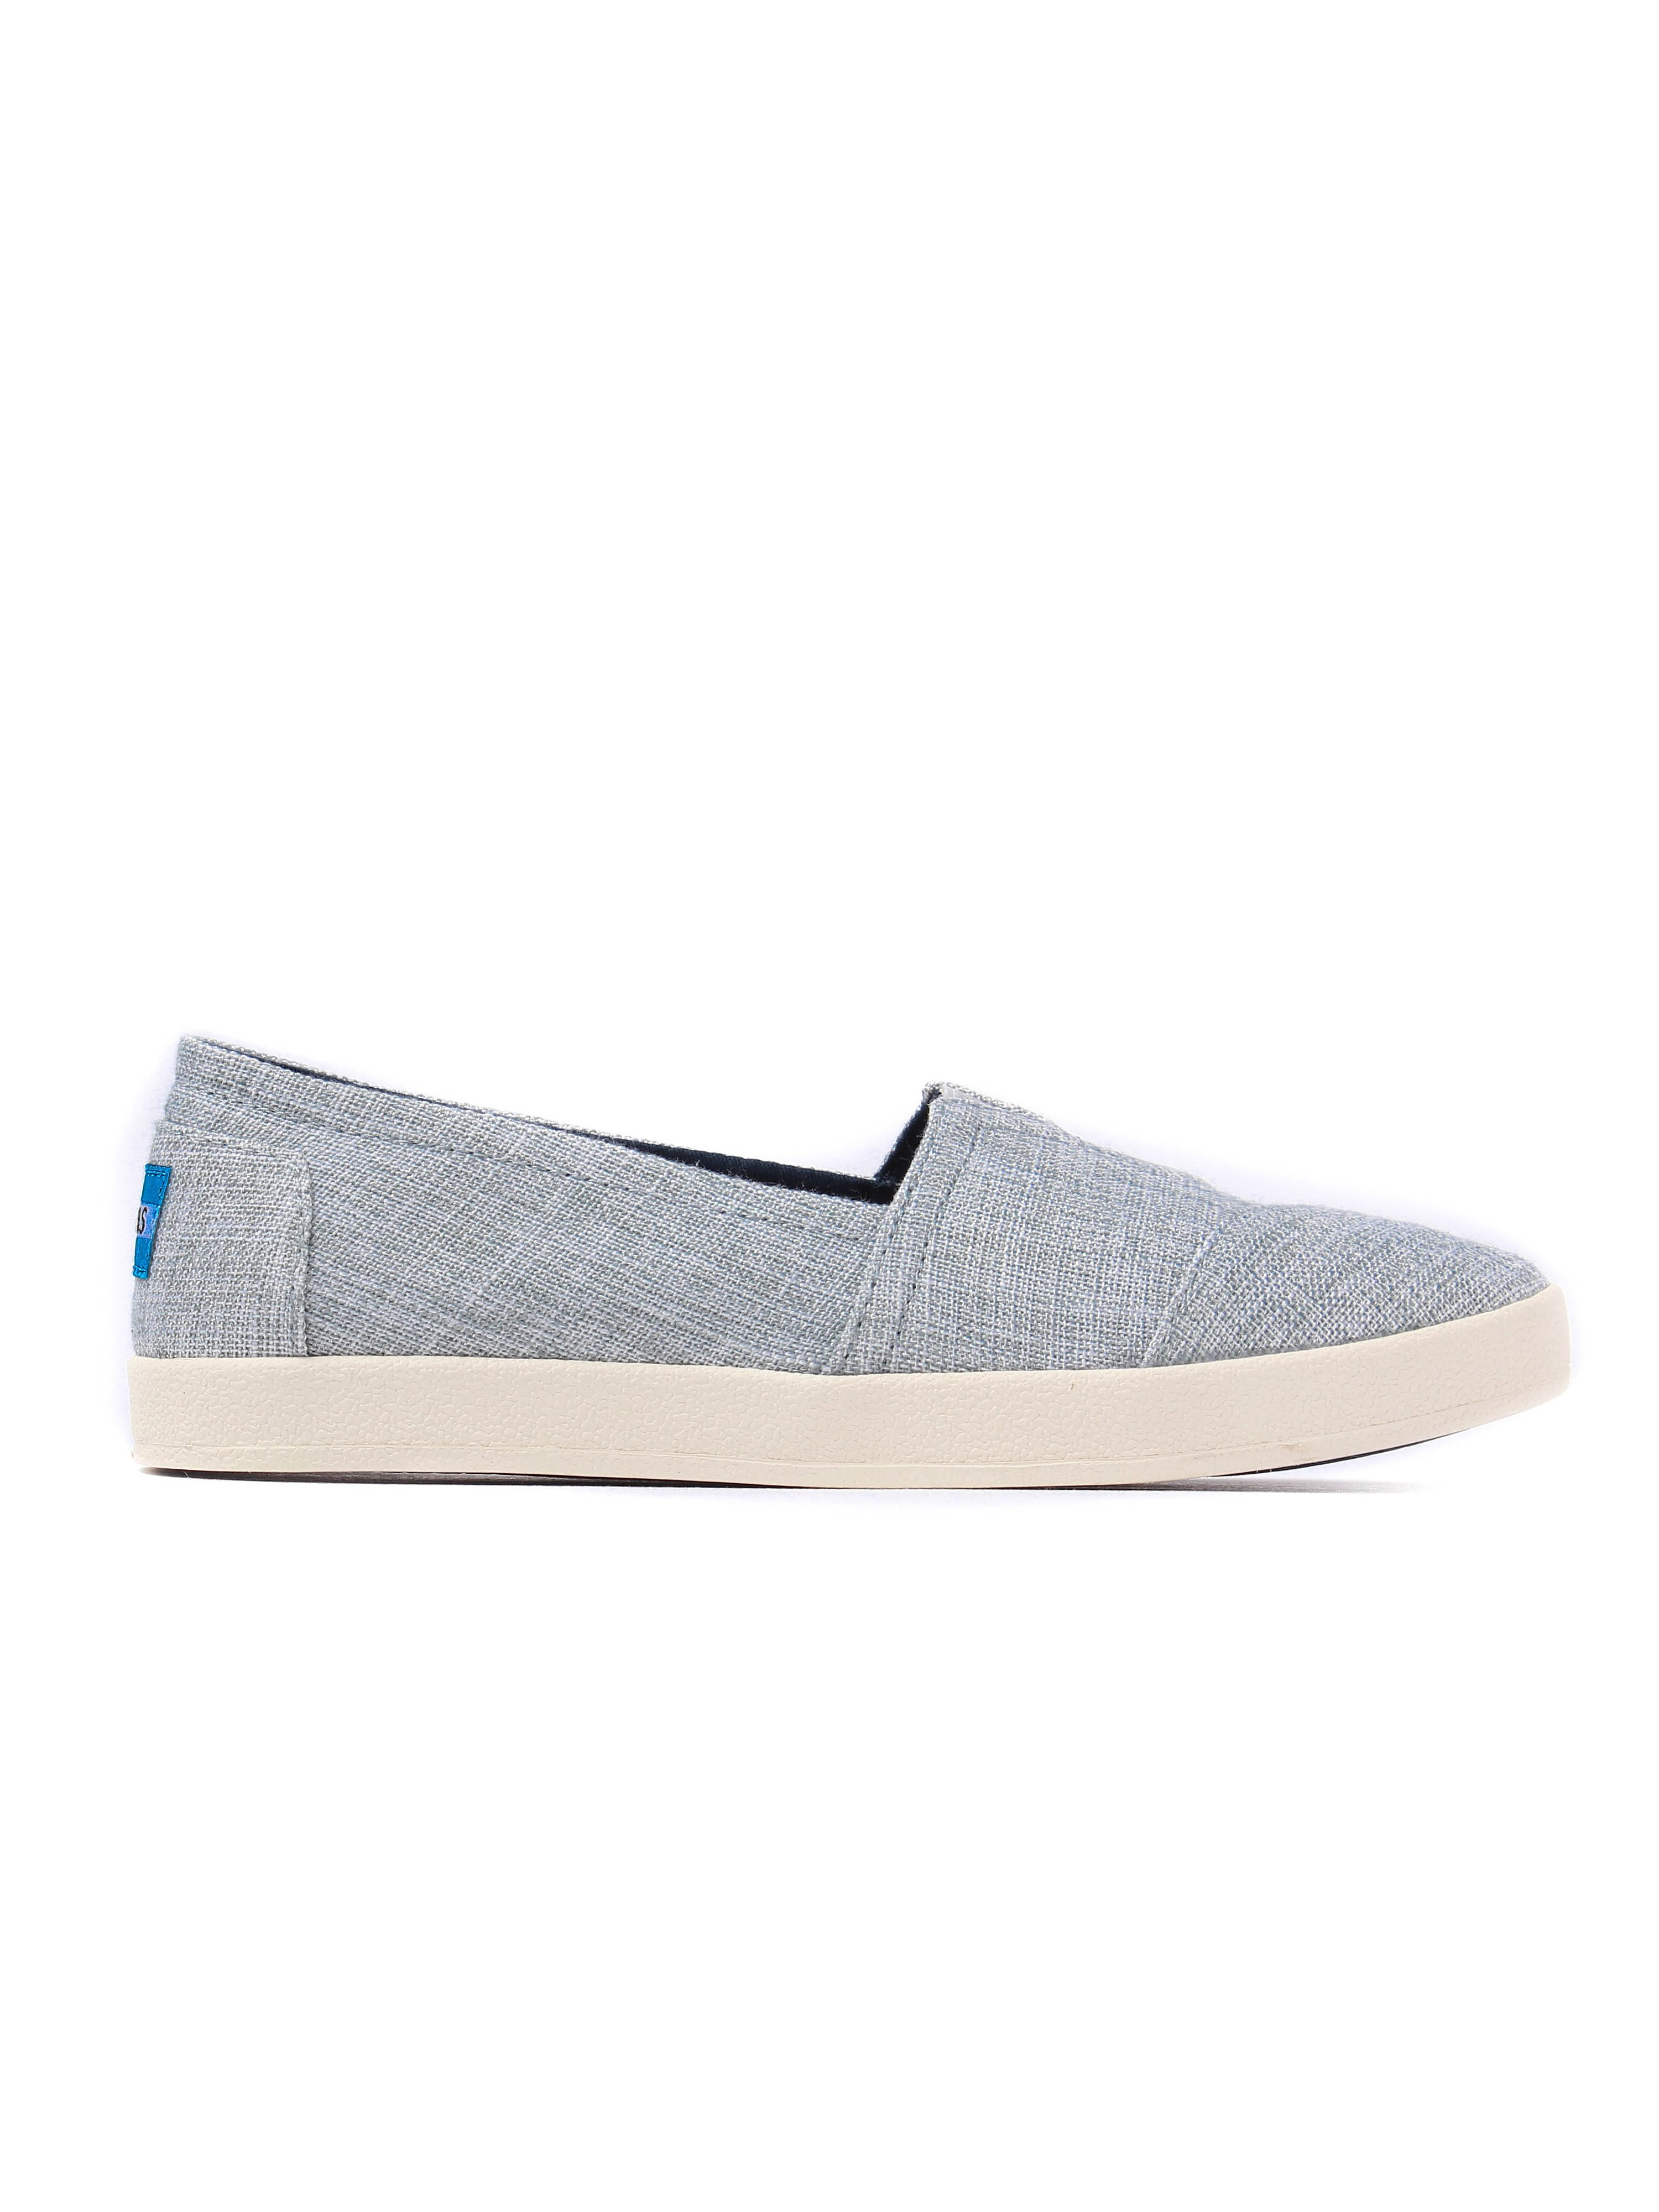 Toms Women's Avalon Lurex Woven Espadrilles - Drizzle Grey